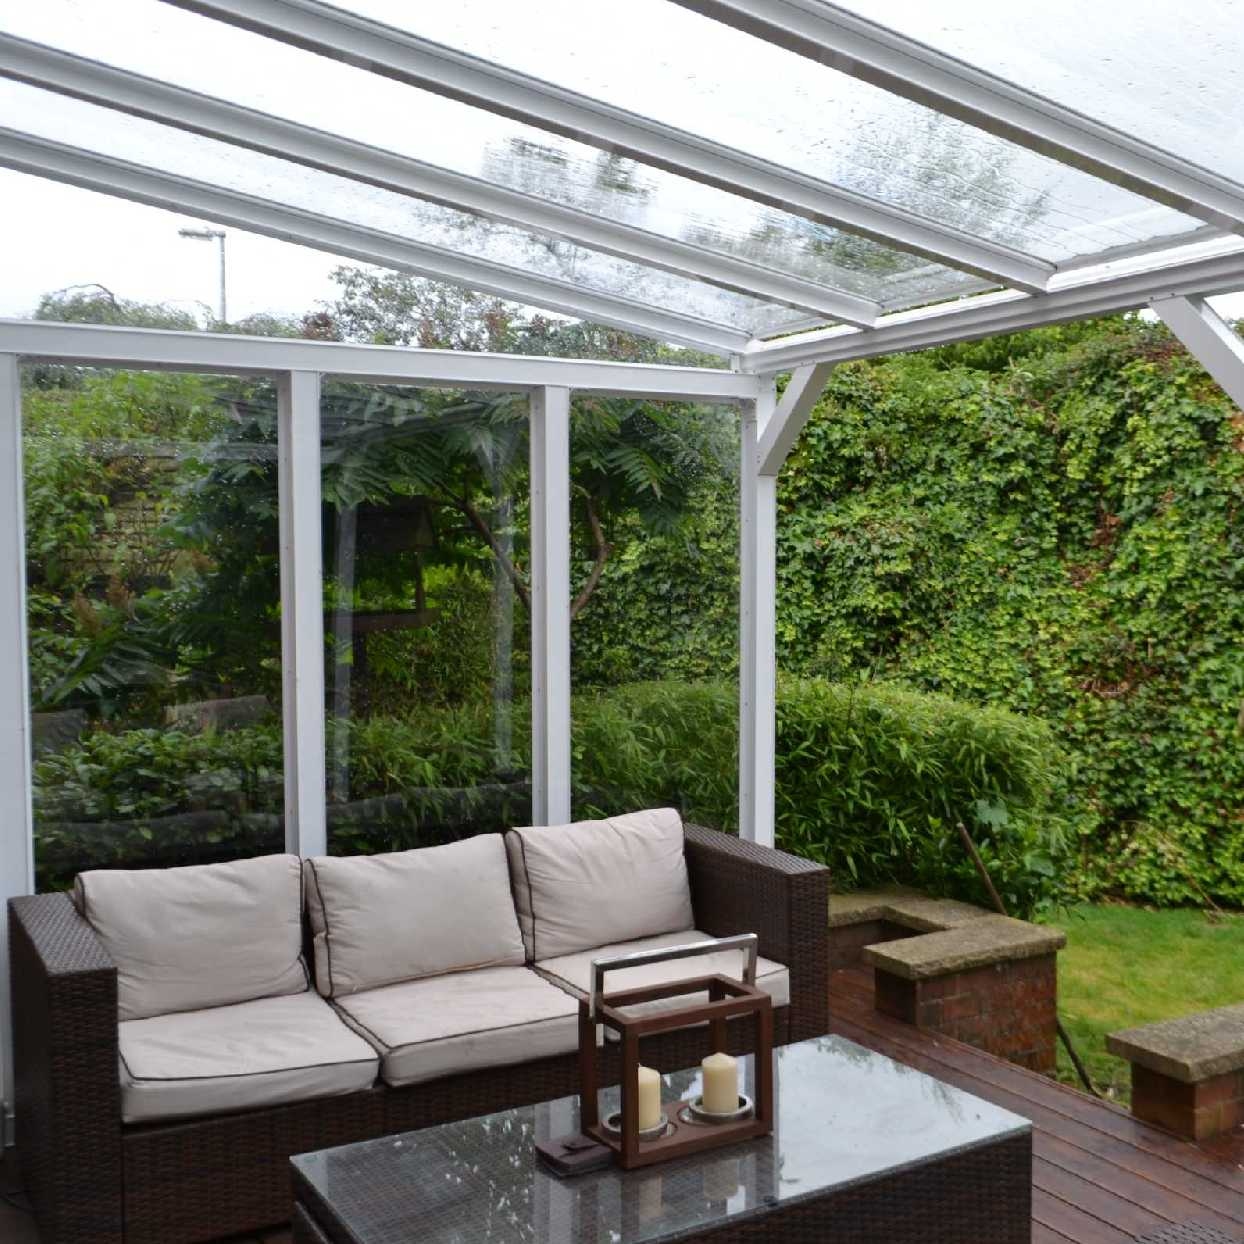 Great selection of Omega Smart Lean-To Canopy with 16mm Polycarbonate Glazing - 10.2m (W) x 4.5m (P), (5) Supporting Posts